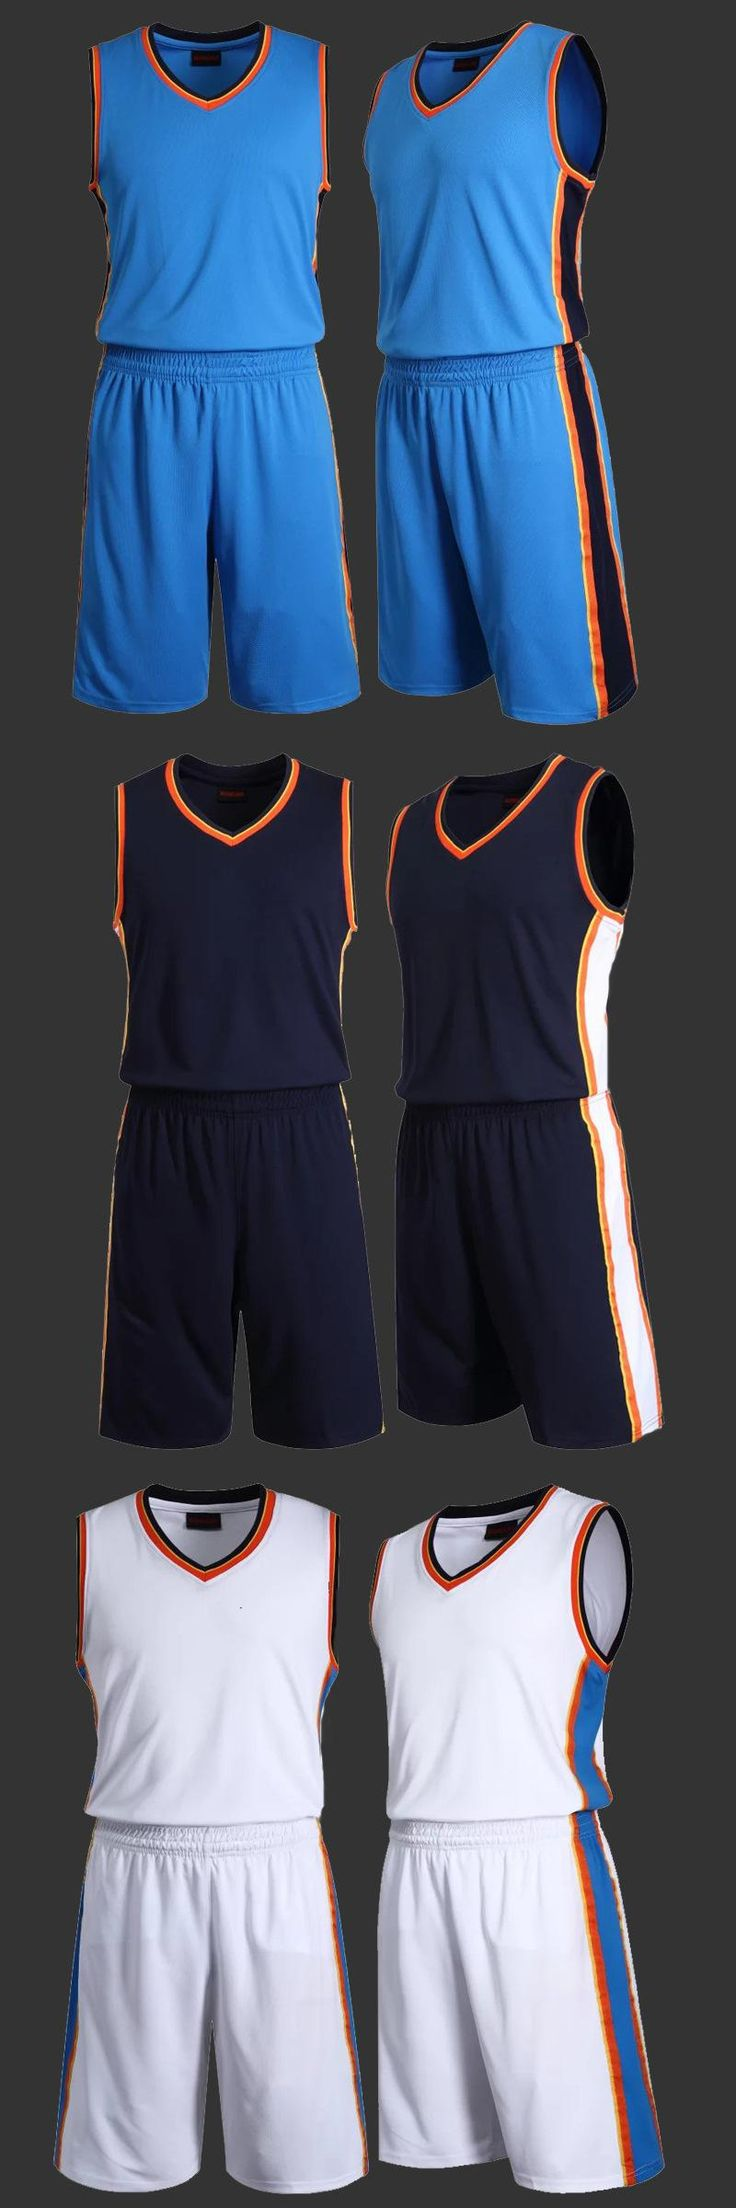 [Visit to Buy] Mens Blank Basketball Jersey Adults Sports Shirt and Shorts Set Team Uniform Training Running Breathable Clothes Plus Size #Advertisement